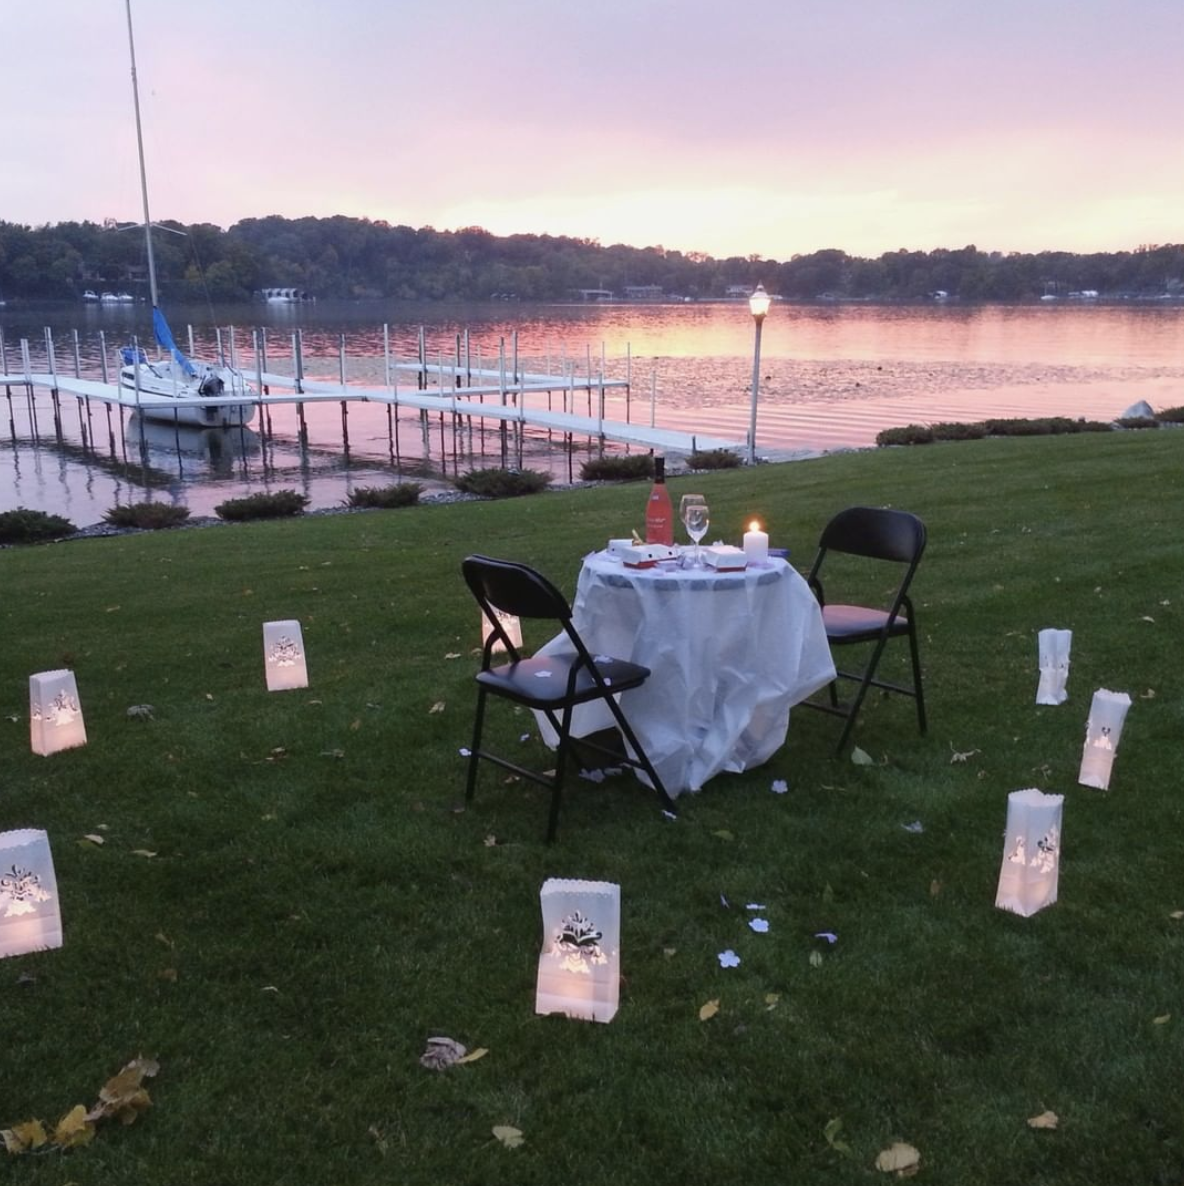 a romantic dinner table for two set up on a grassy lakeshore